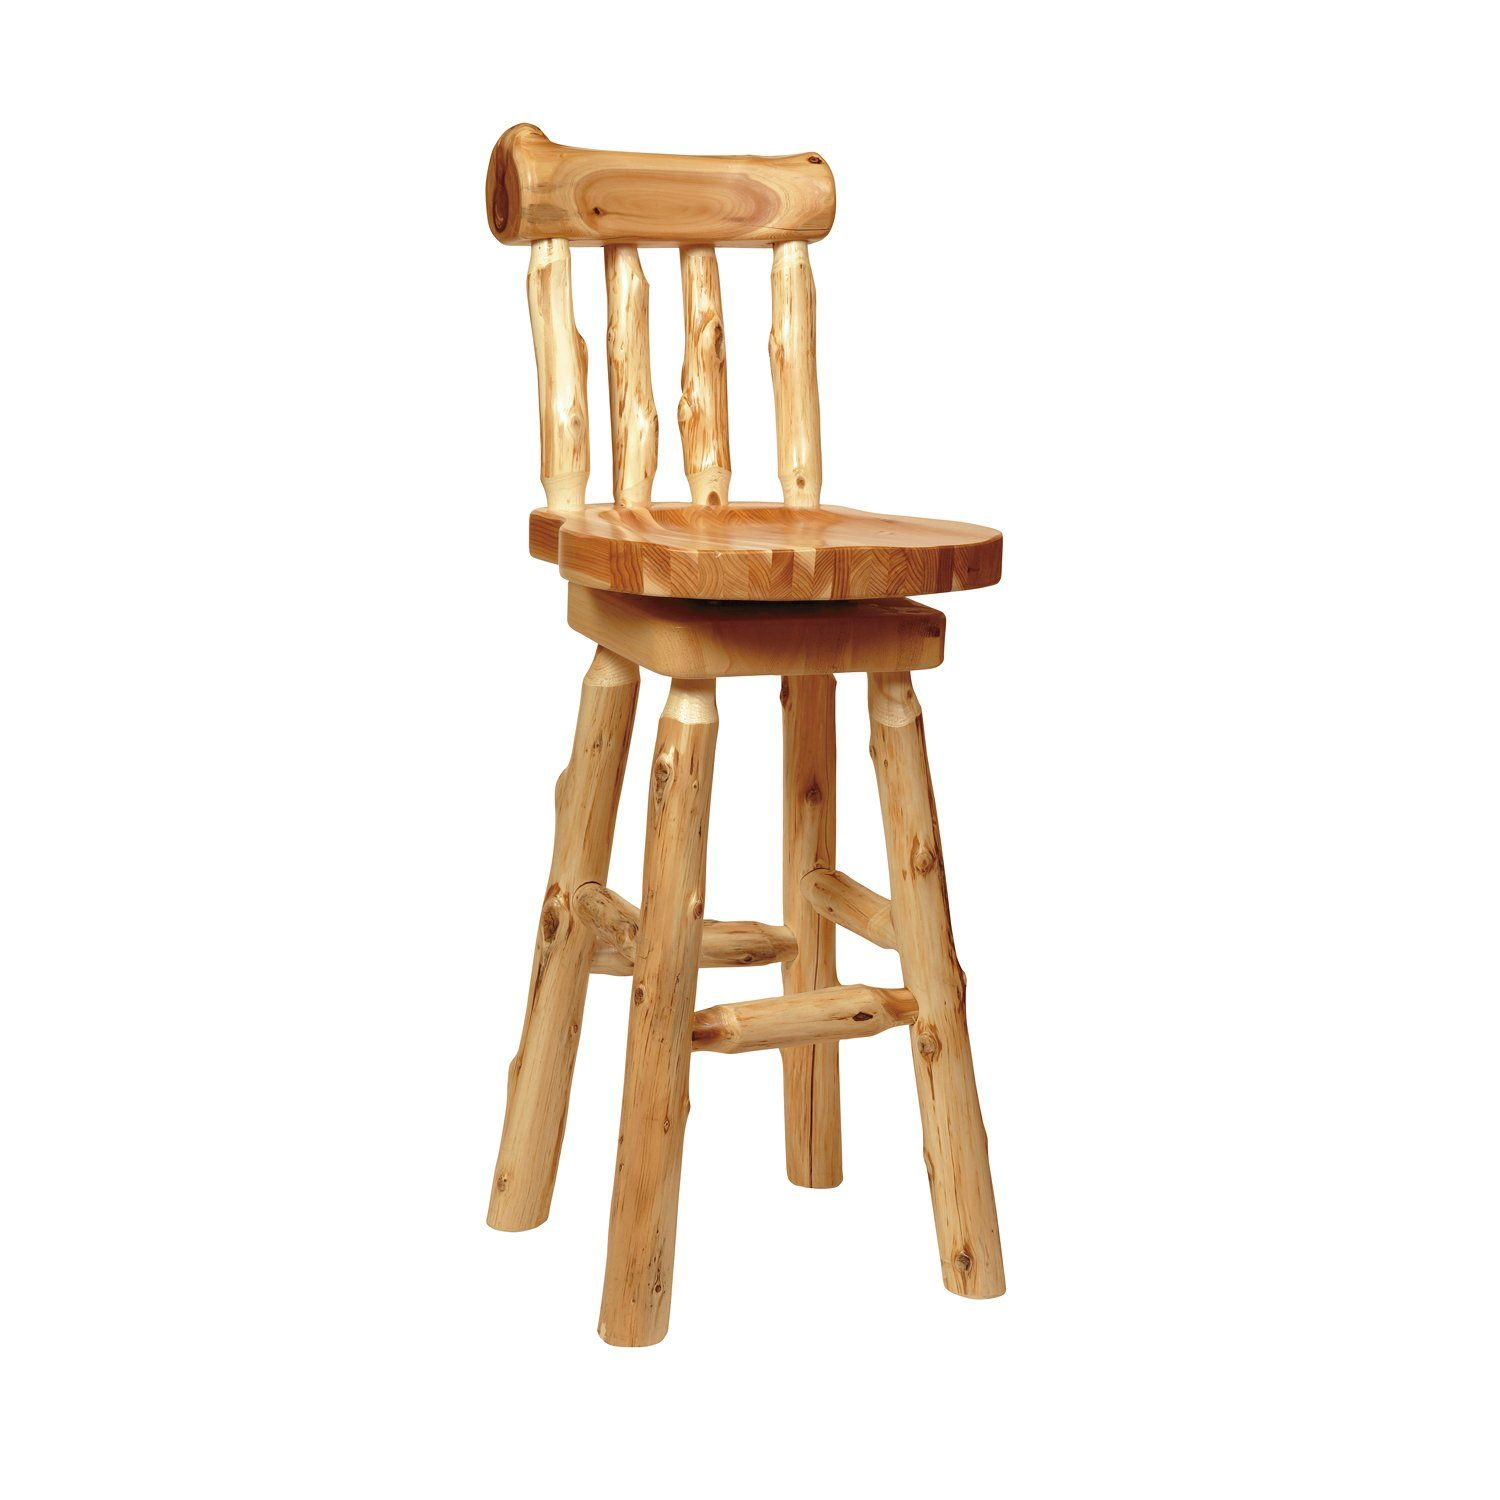 Shop Fireside Lodge Furniture 1622 Cedar Log Bar Stool at ATG Stores